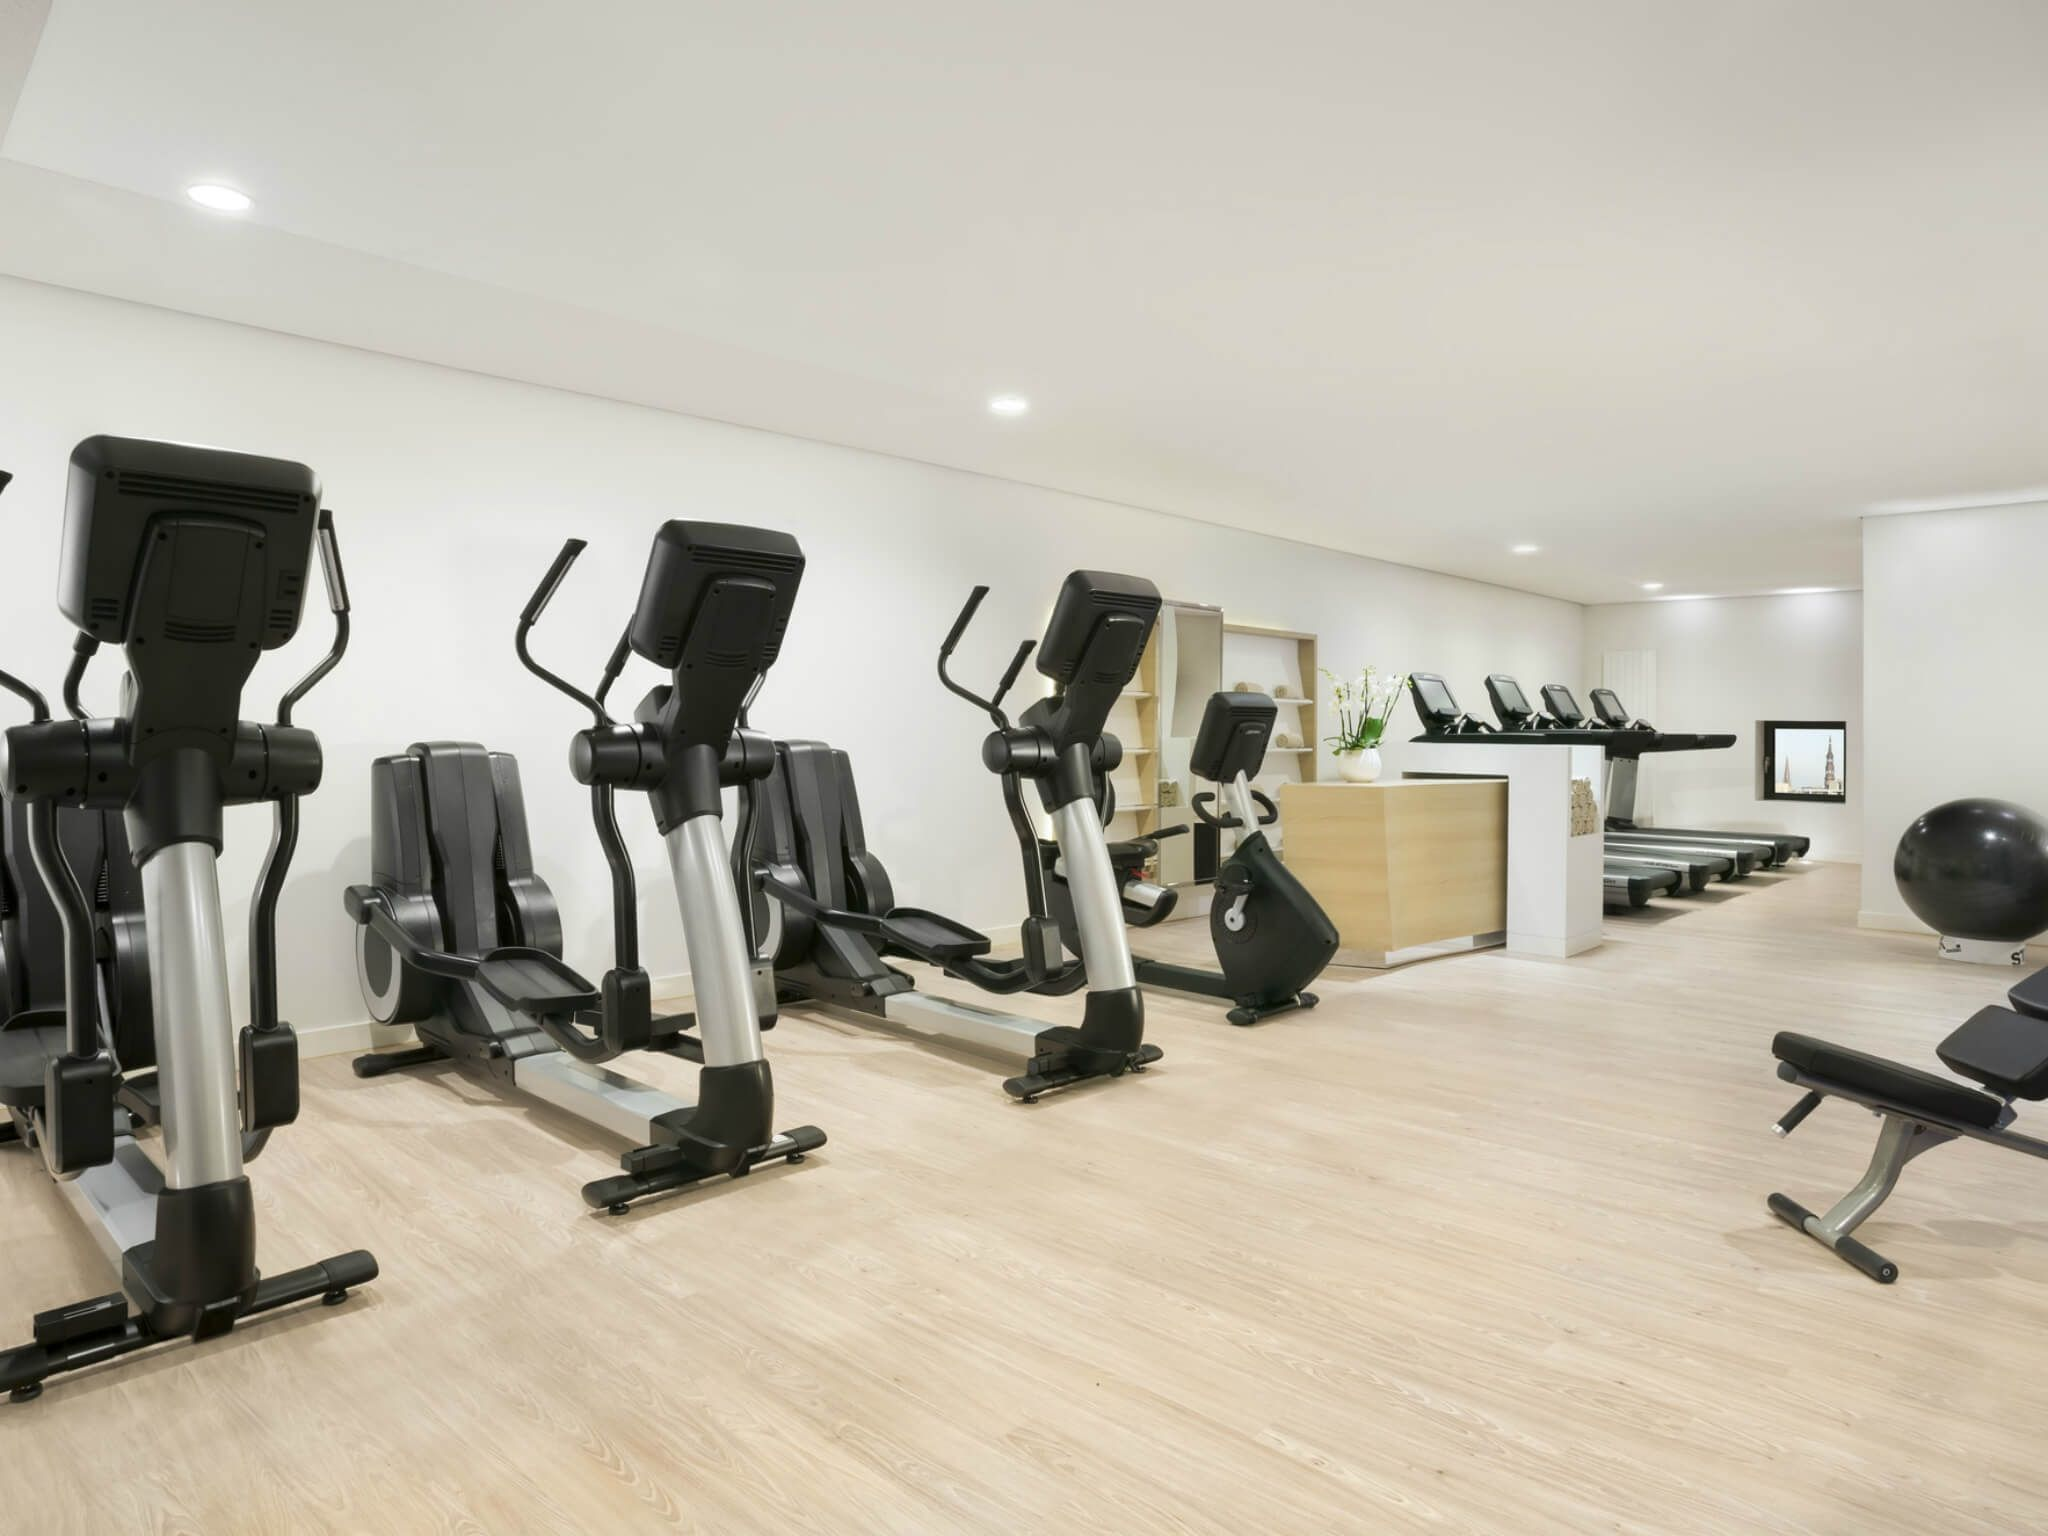 Fitness area in the Westin Hamburg